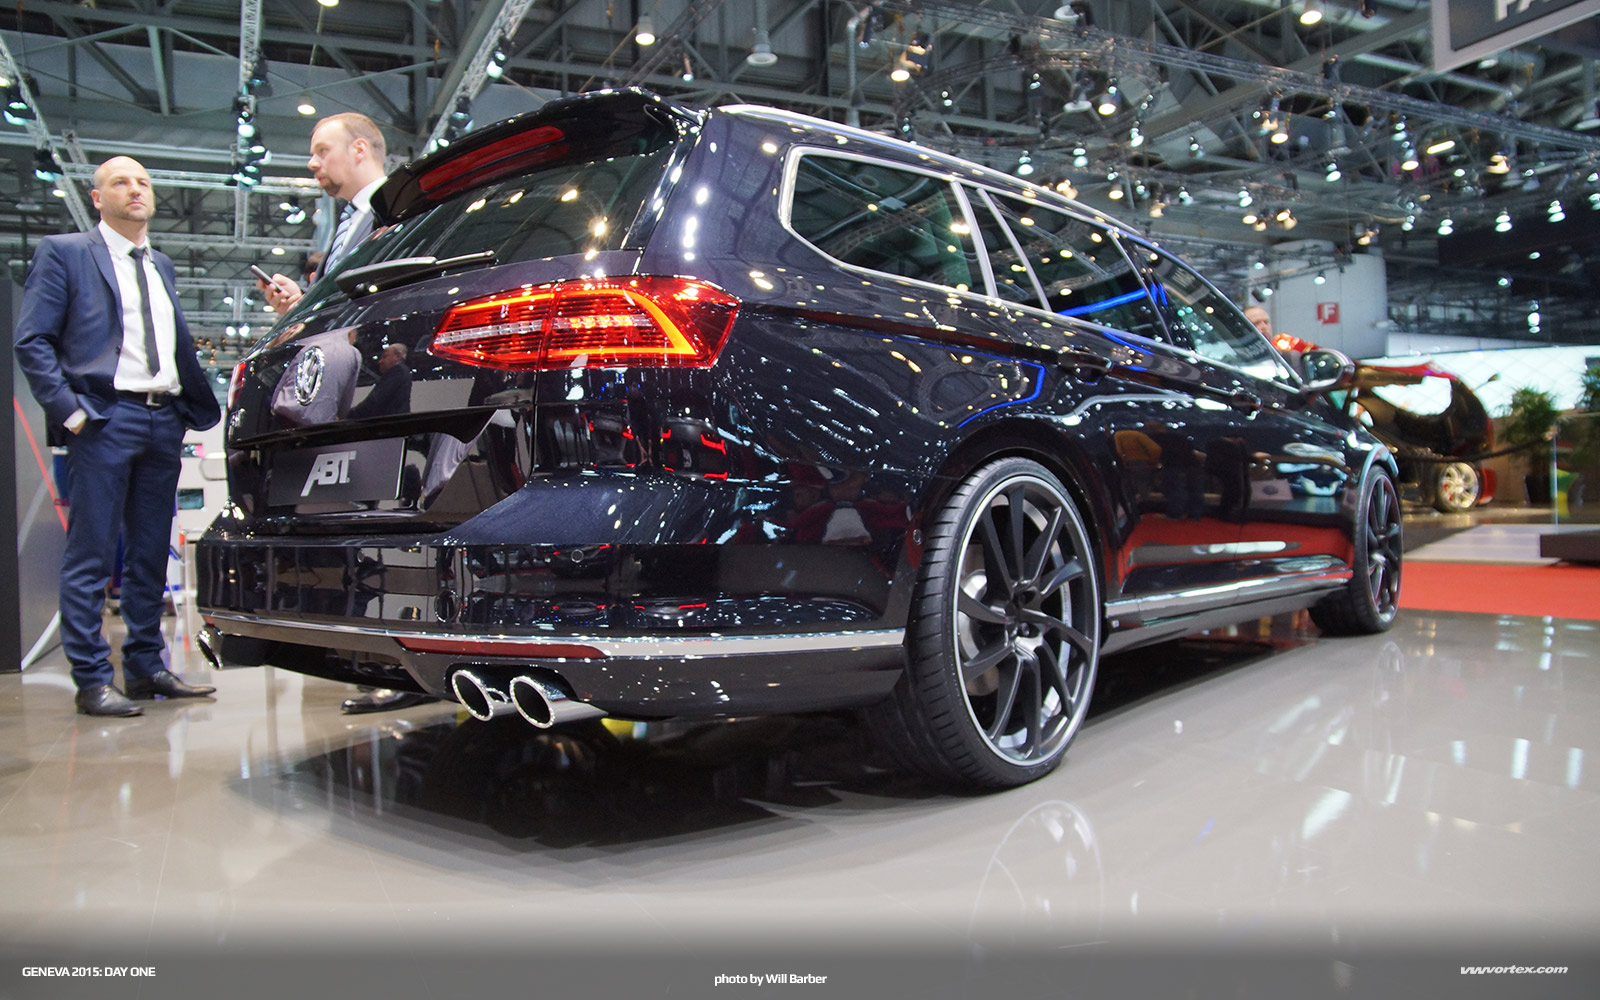 Geneva-2015-Day-One-VolkswagenGroup-480